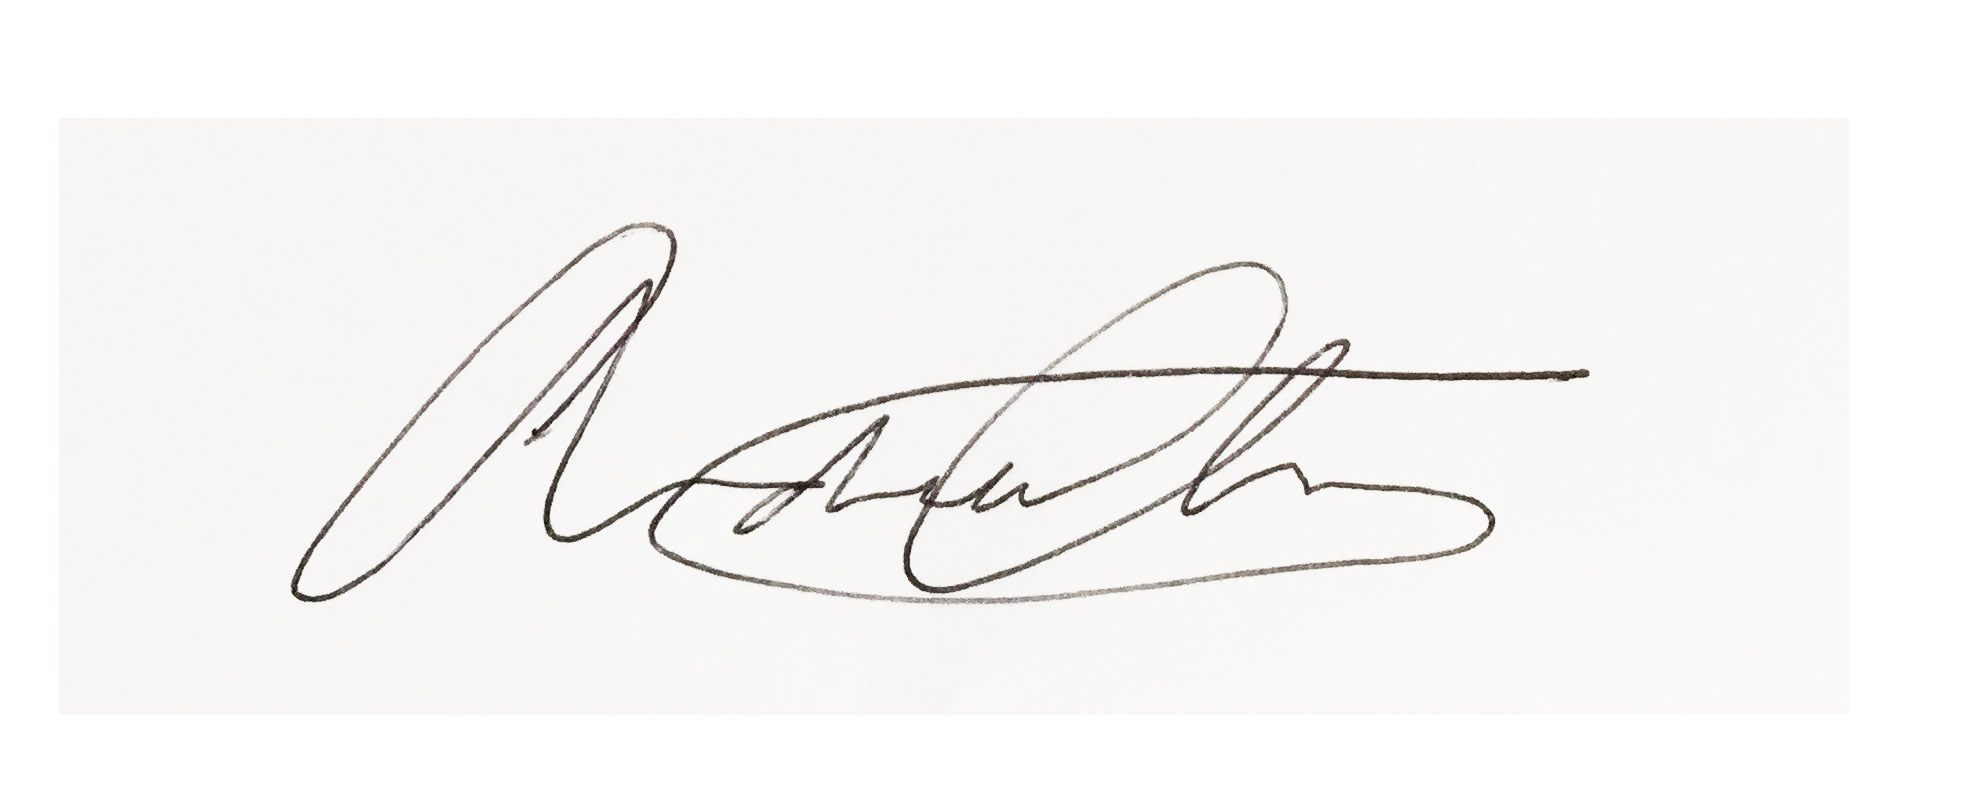 Andrew Chan's Signature